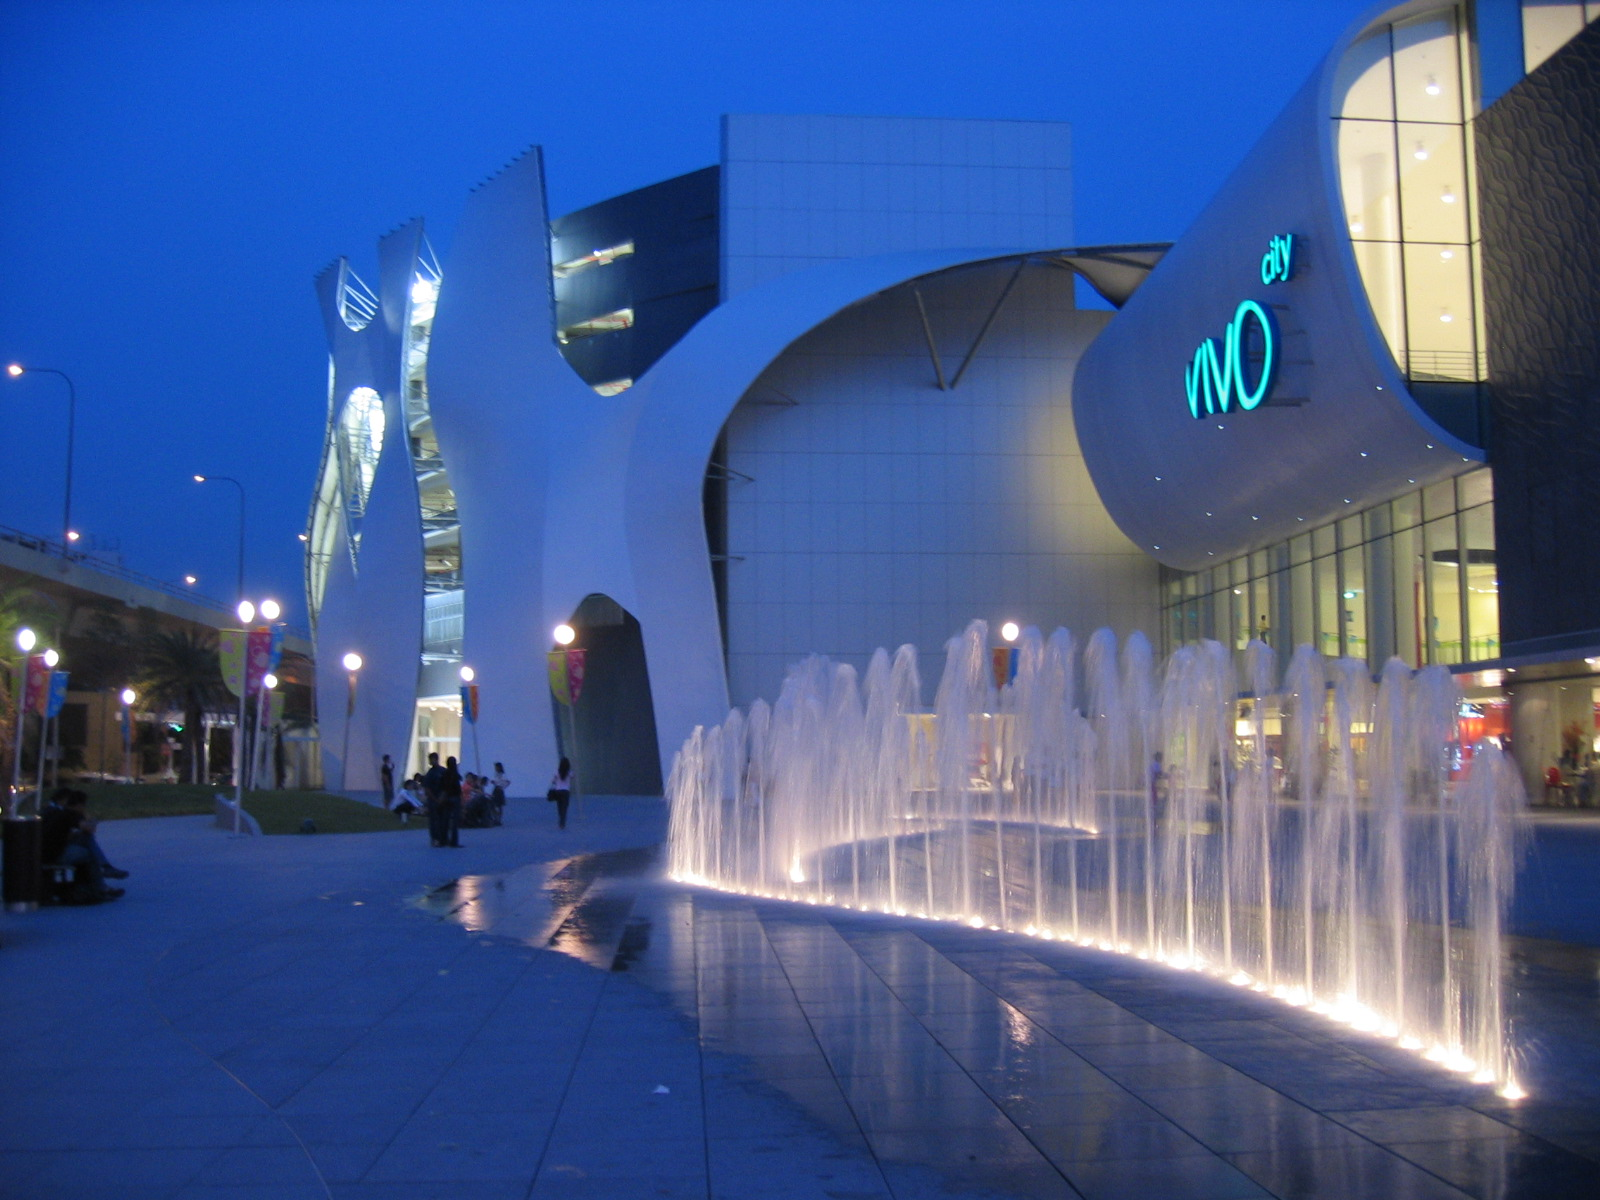 The frontview of Vivocity, a shopping mall in SIngapore